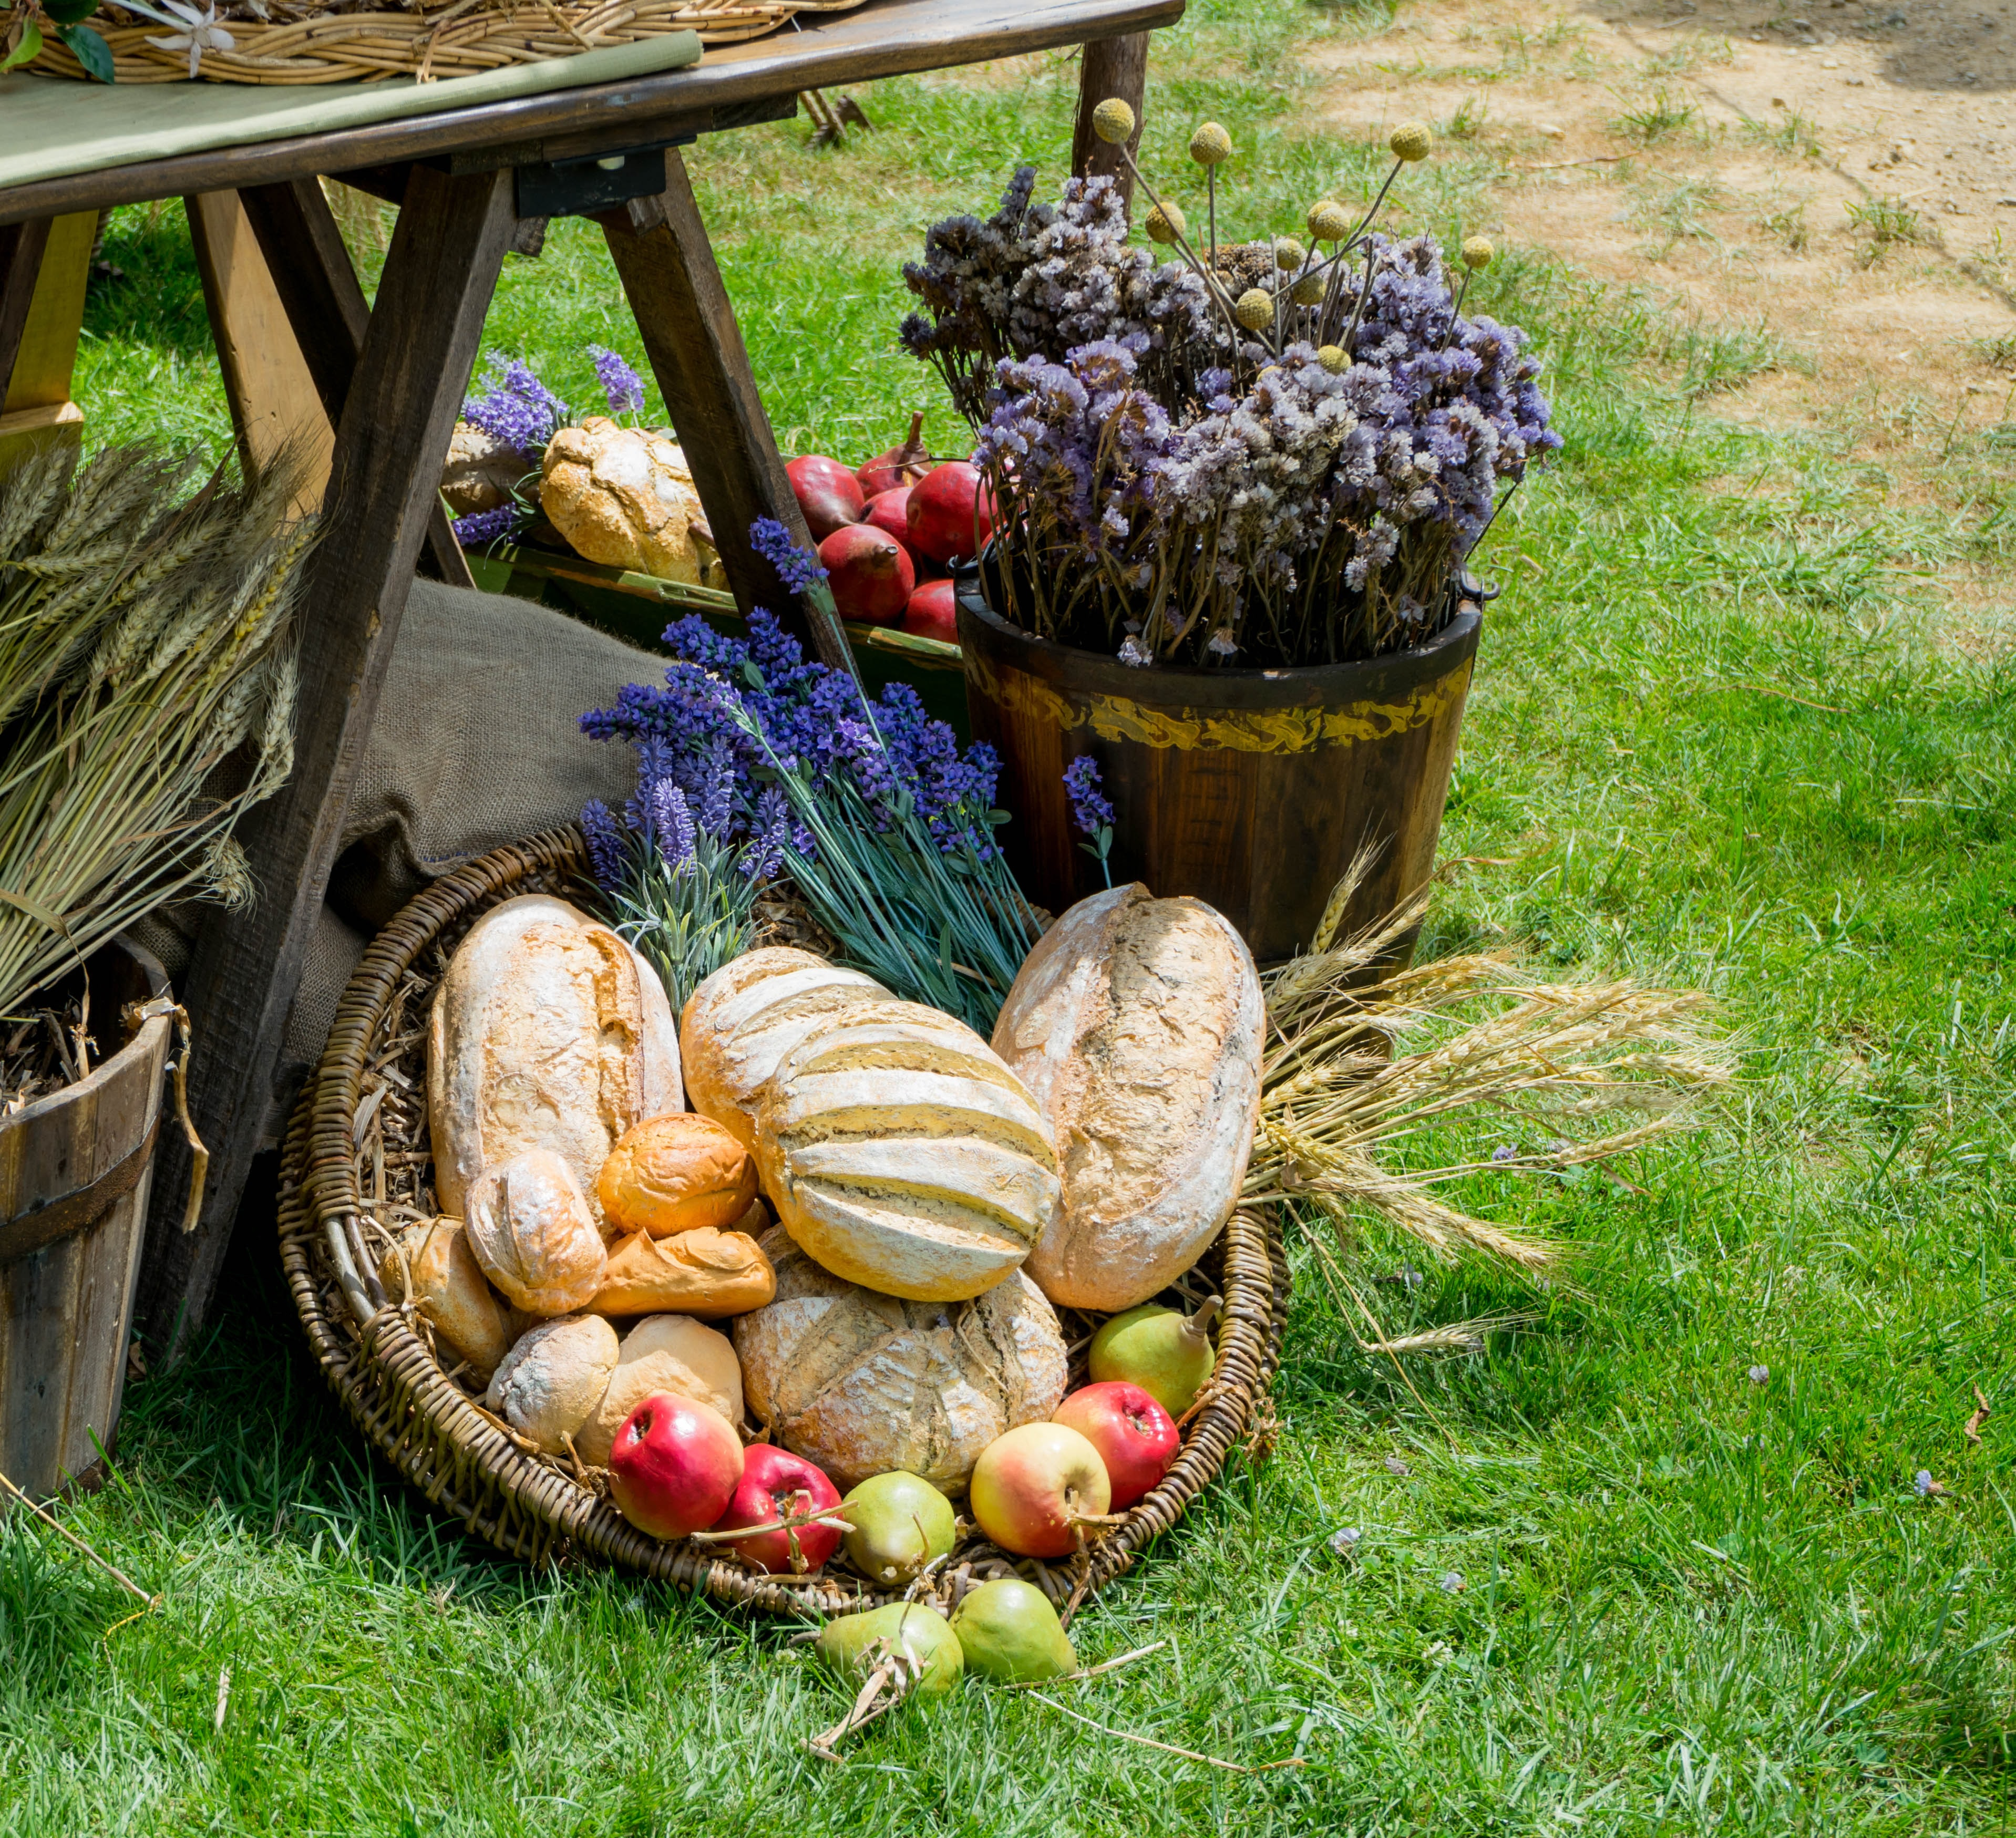 bread and fruits on tray near lavender flowers